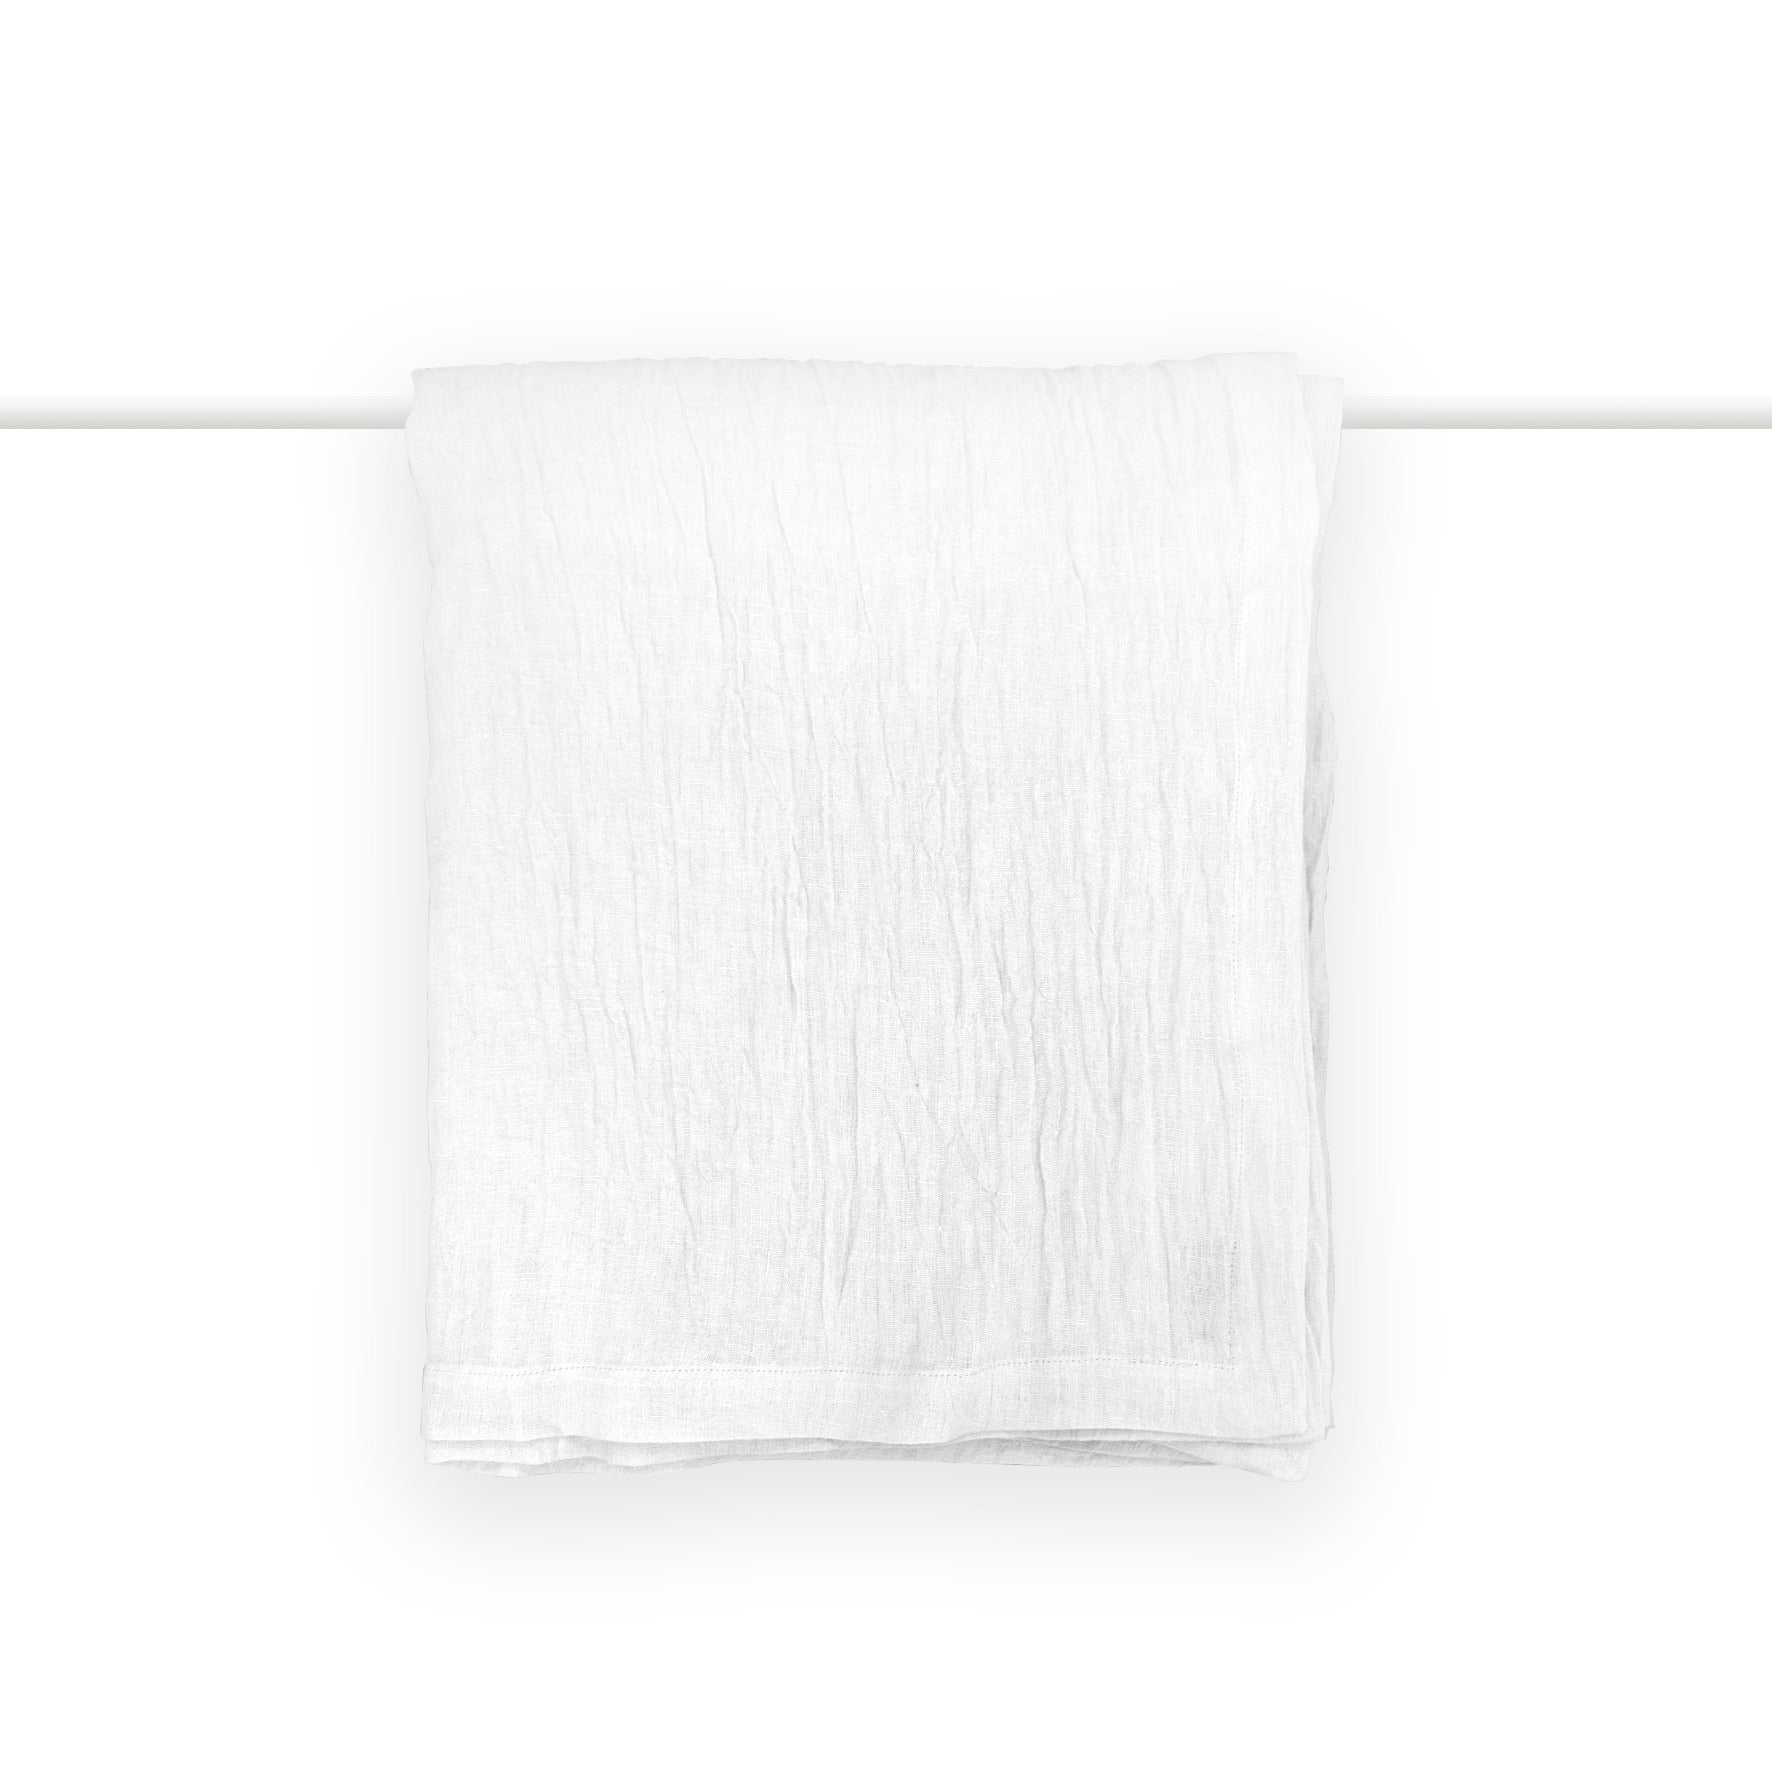 Orinoco Textured Linen Throw - White